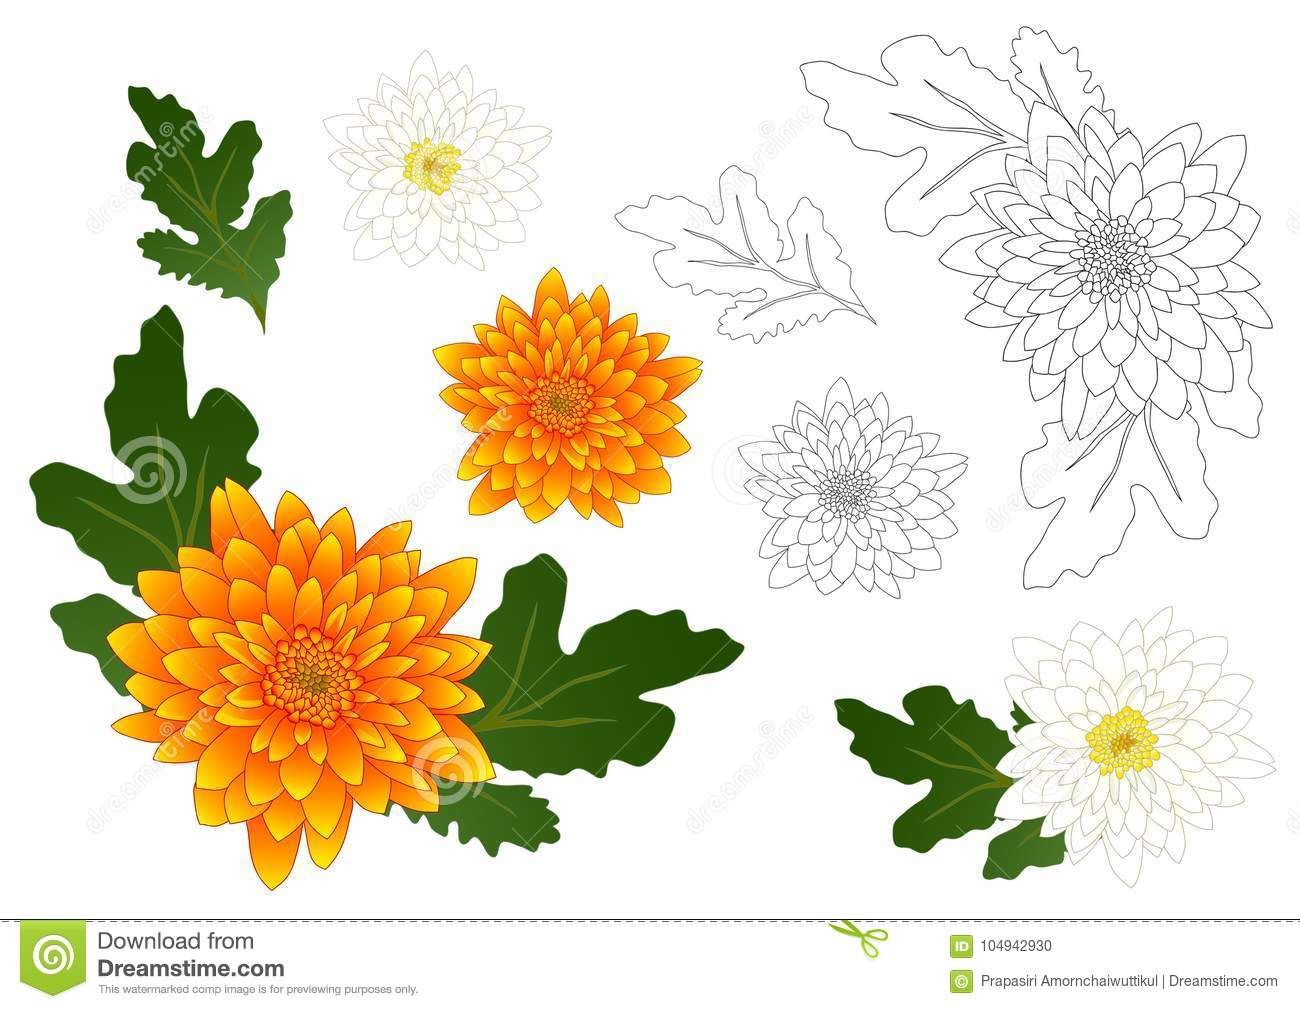 Yellow And White Chrysanthemum Flower Outline Vector Illustration Isolated On White Background Flower Outline Chrysanthemum Flower White Chrysanthemum